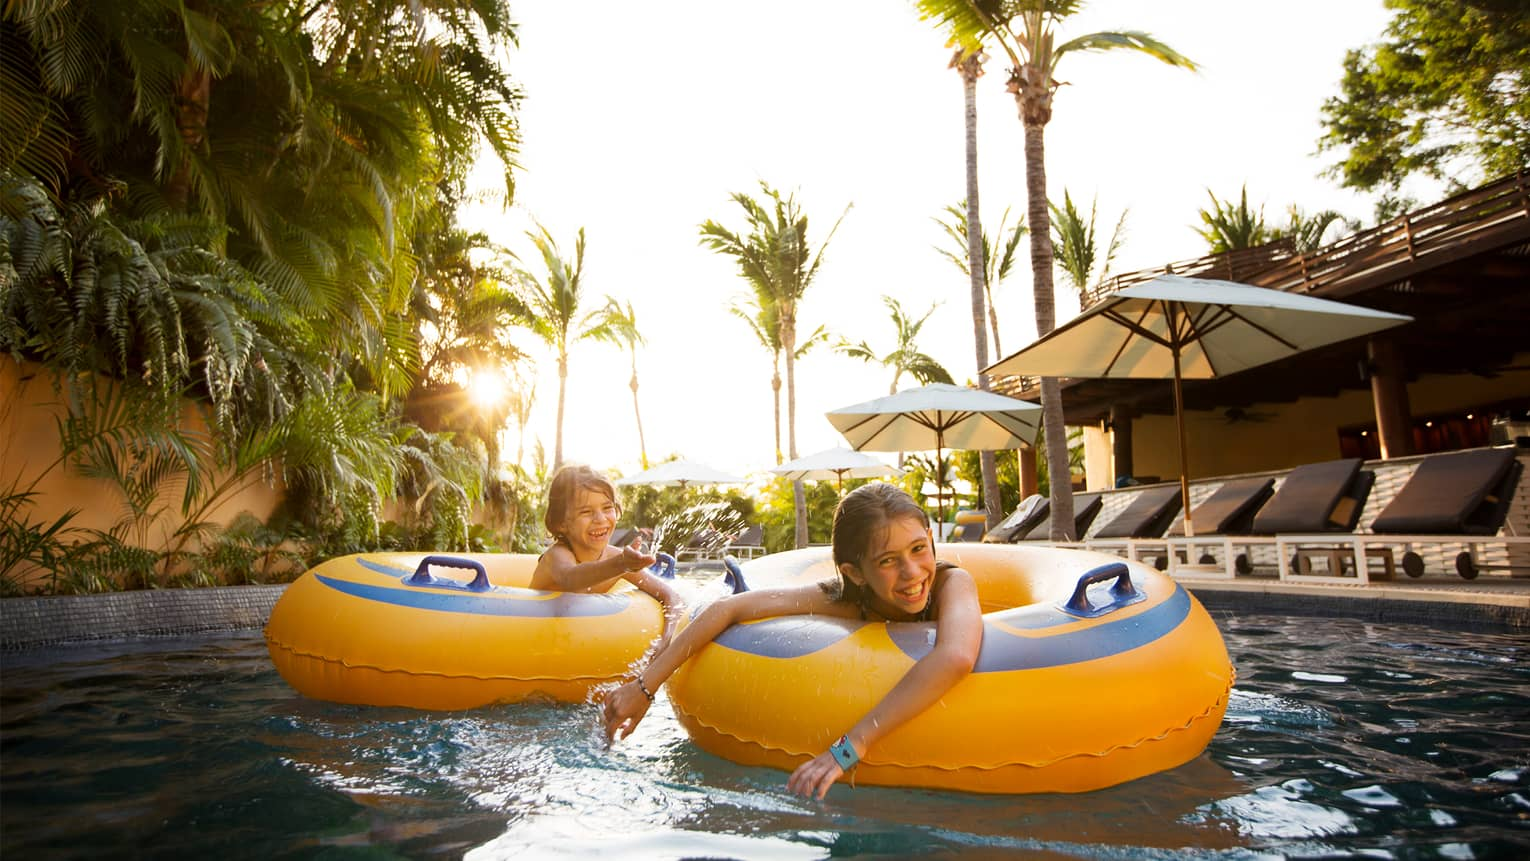 Two children smile in yellow inflatable tubes on lazy river, palms and pool deck in background